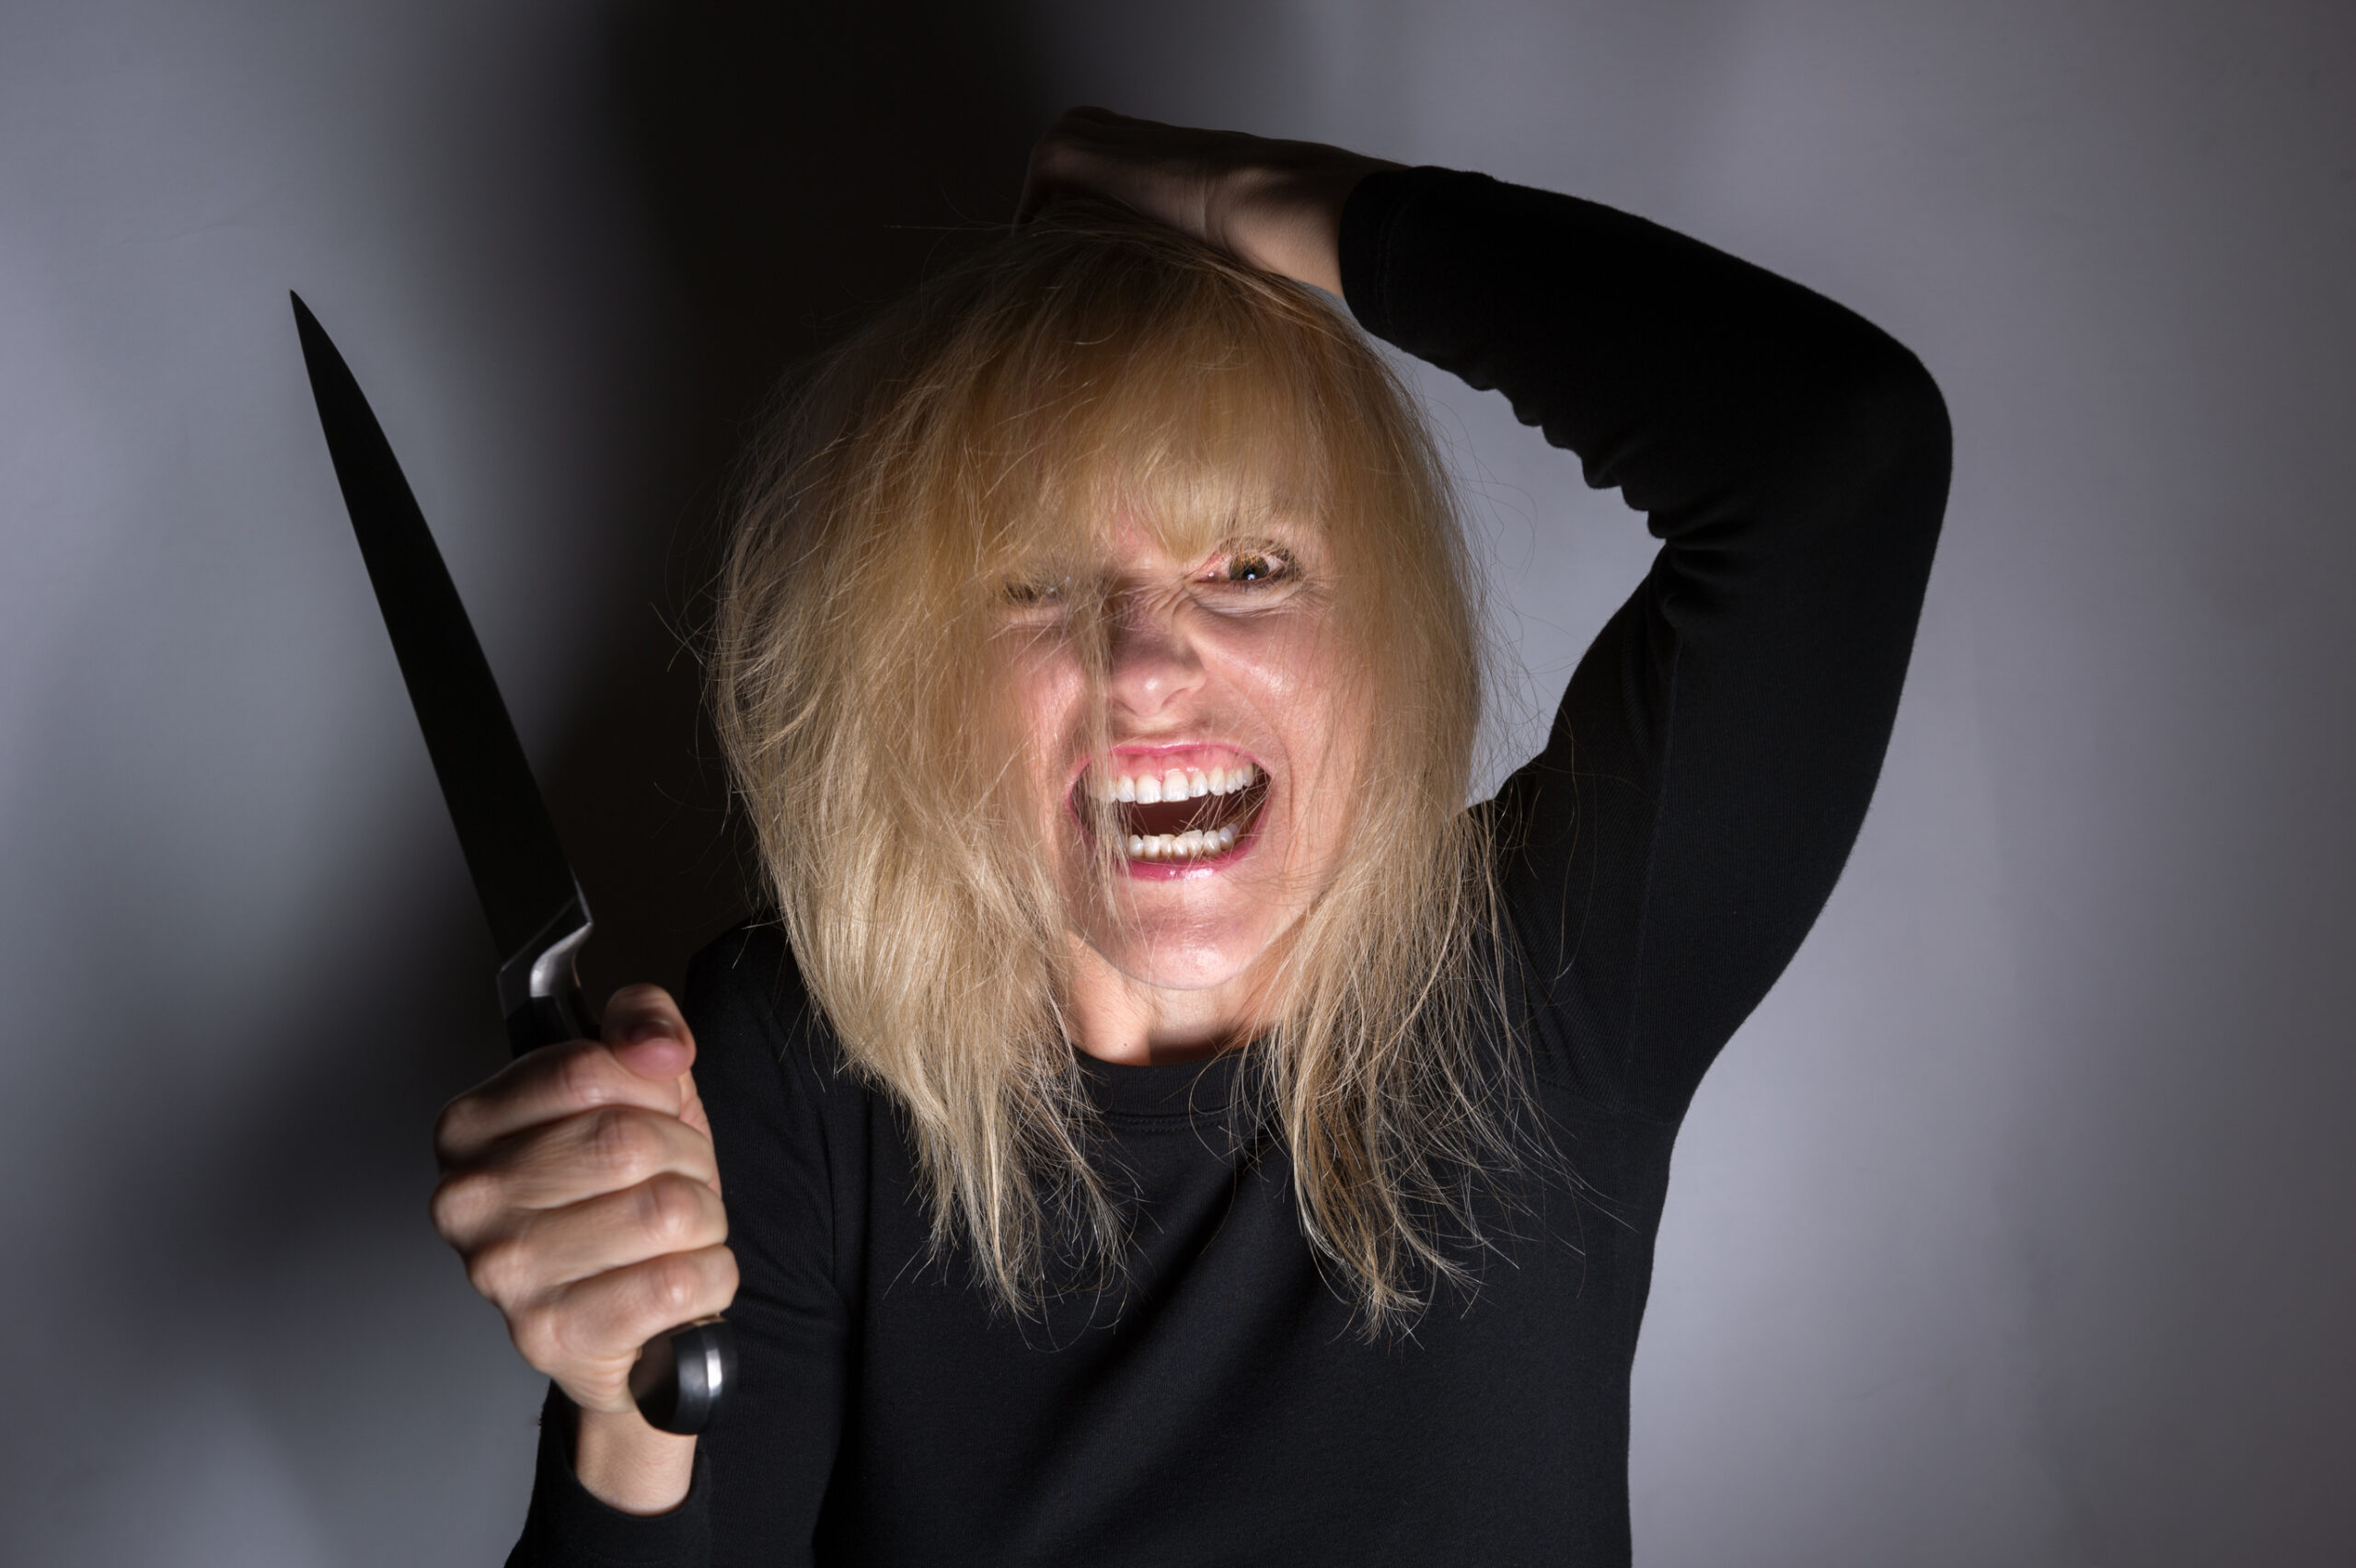 psycho woman holding a knife